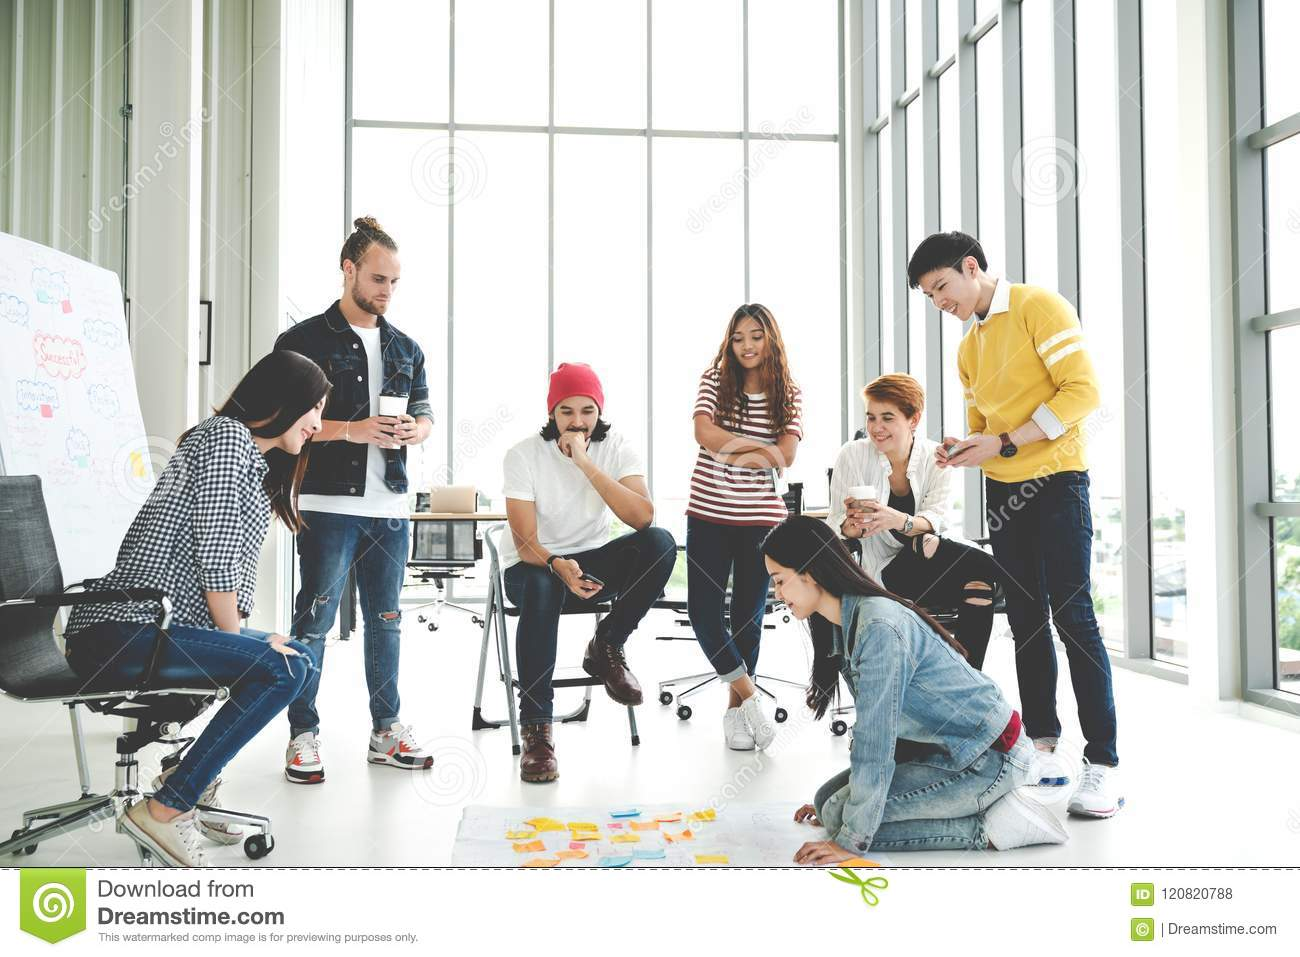 Young creative diverse group meeting and looking at project plan lay out on floor discuss or brainstorm business strategy